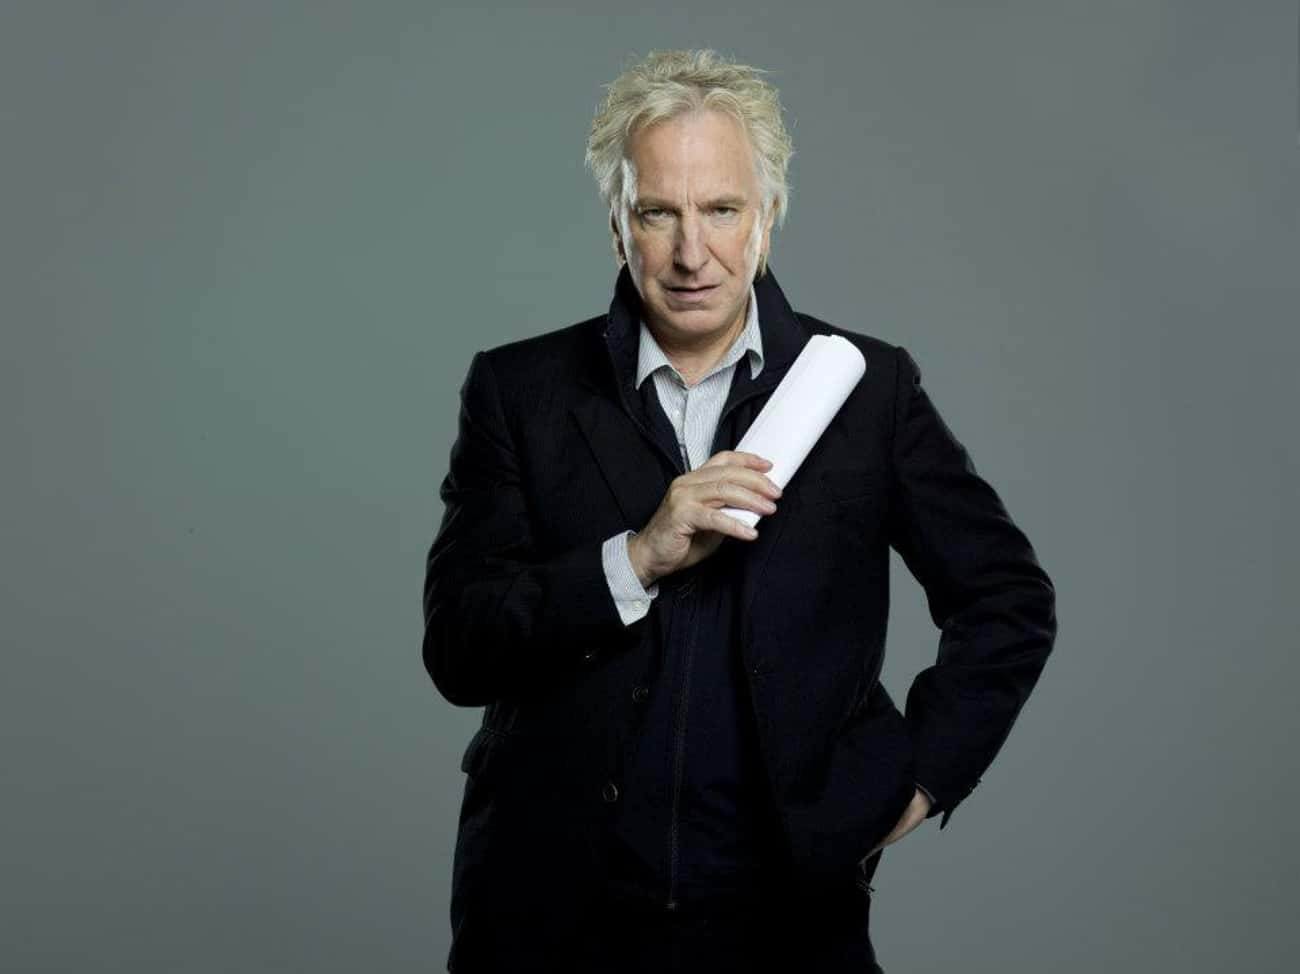 Alan Rickman in Vito Blazer wi is listed (or ranked) 4 on the list Hot Alan Rickman Photos